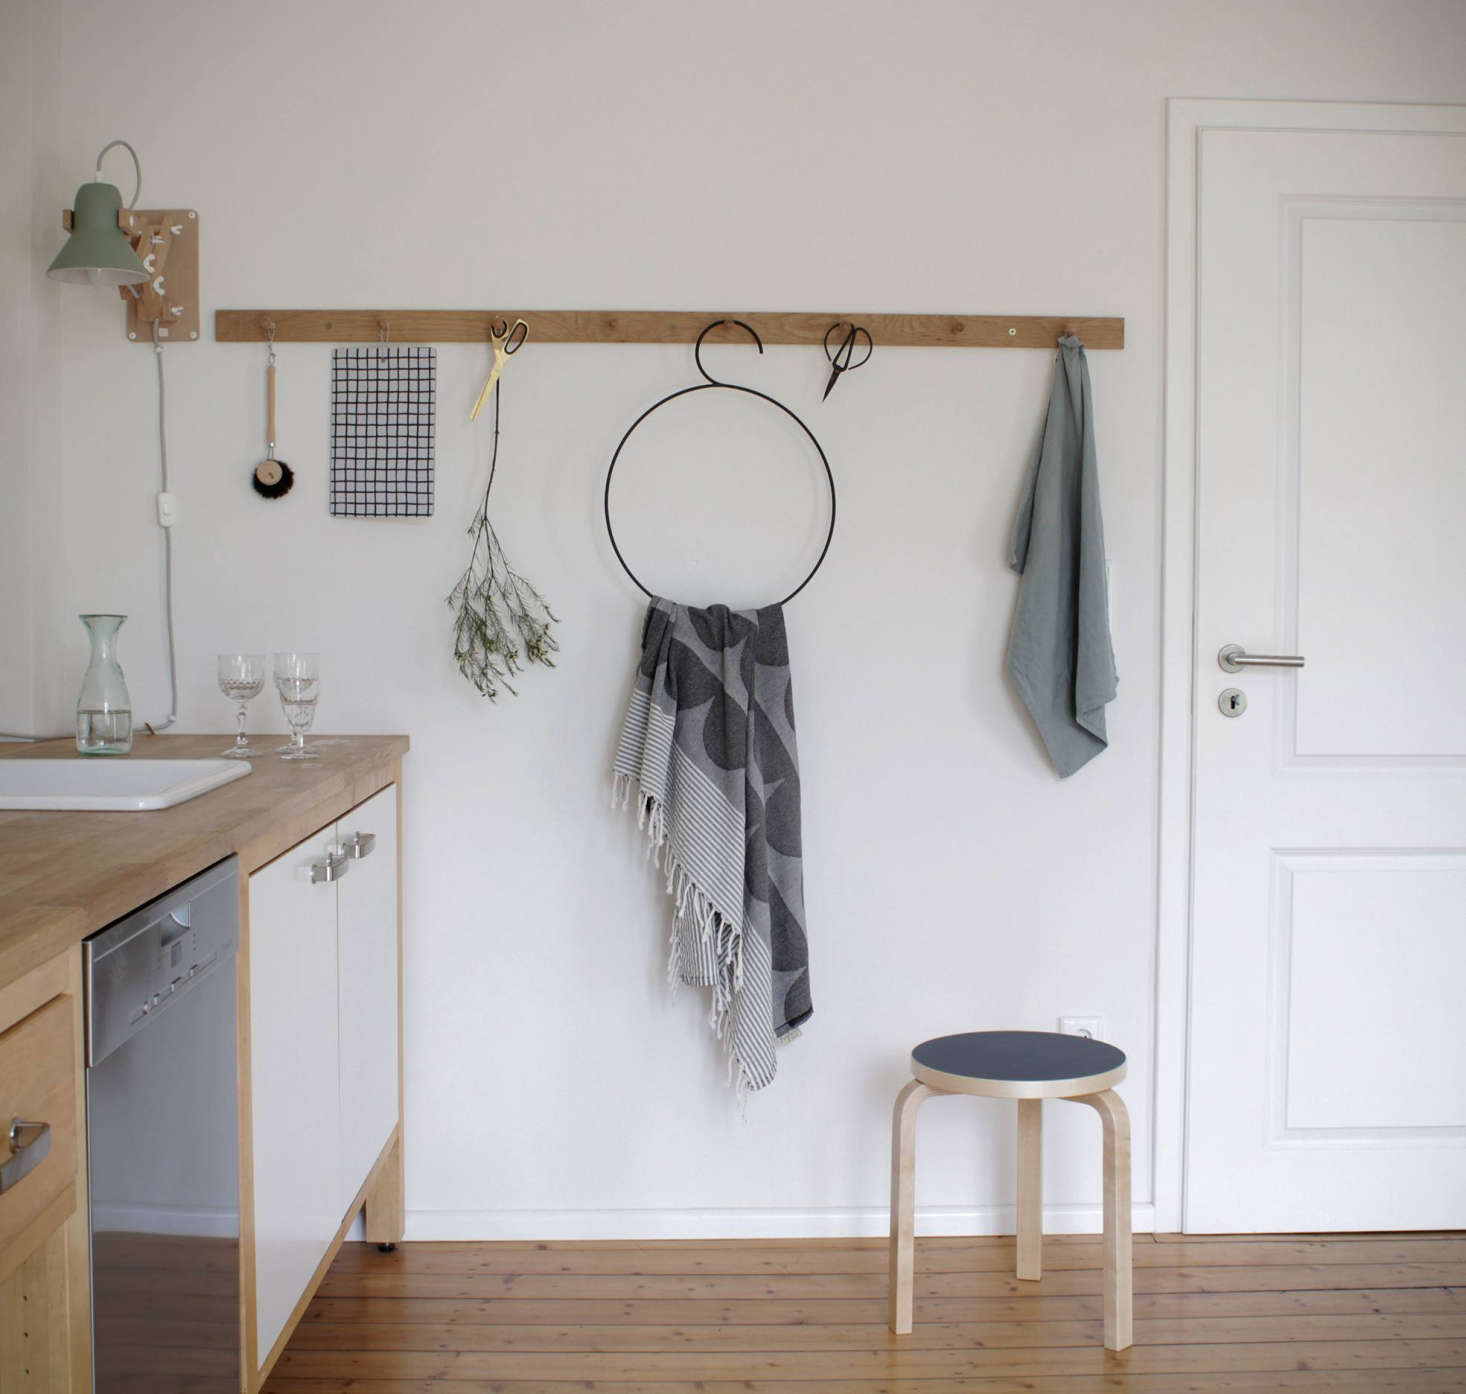 A Shaker peg rail from Artilleriet in Gotenburg, Sweden holds a Redecker Dish Brush, House of Rym hand towel, and other sink accessories. The round wire hanger is the Tangent Hanger from Stilleben.